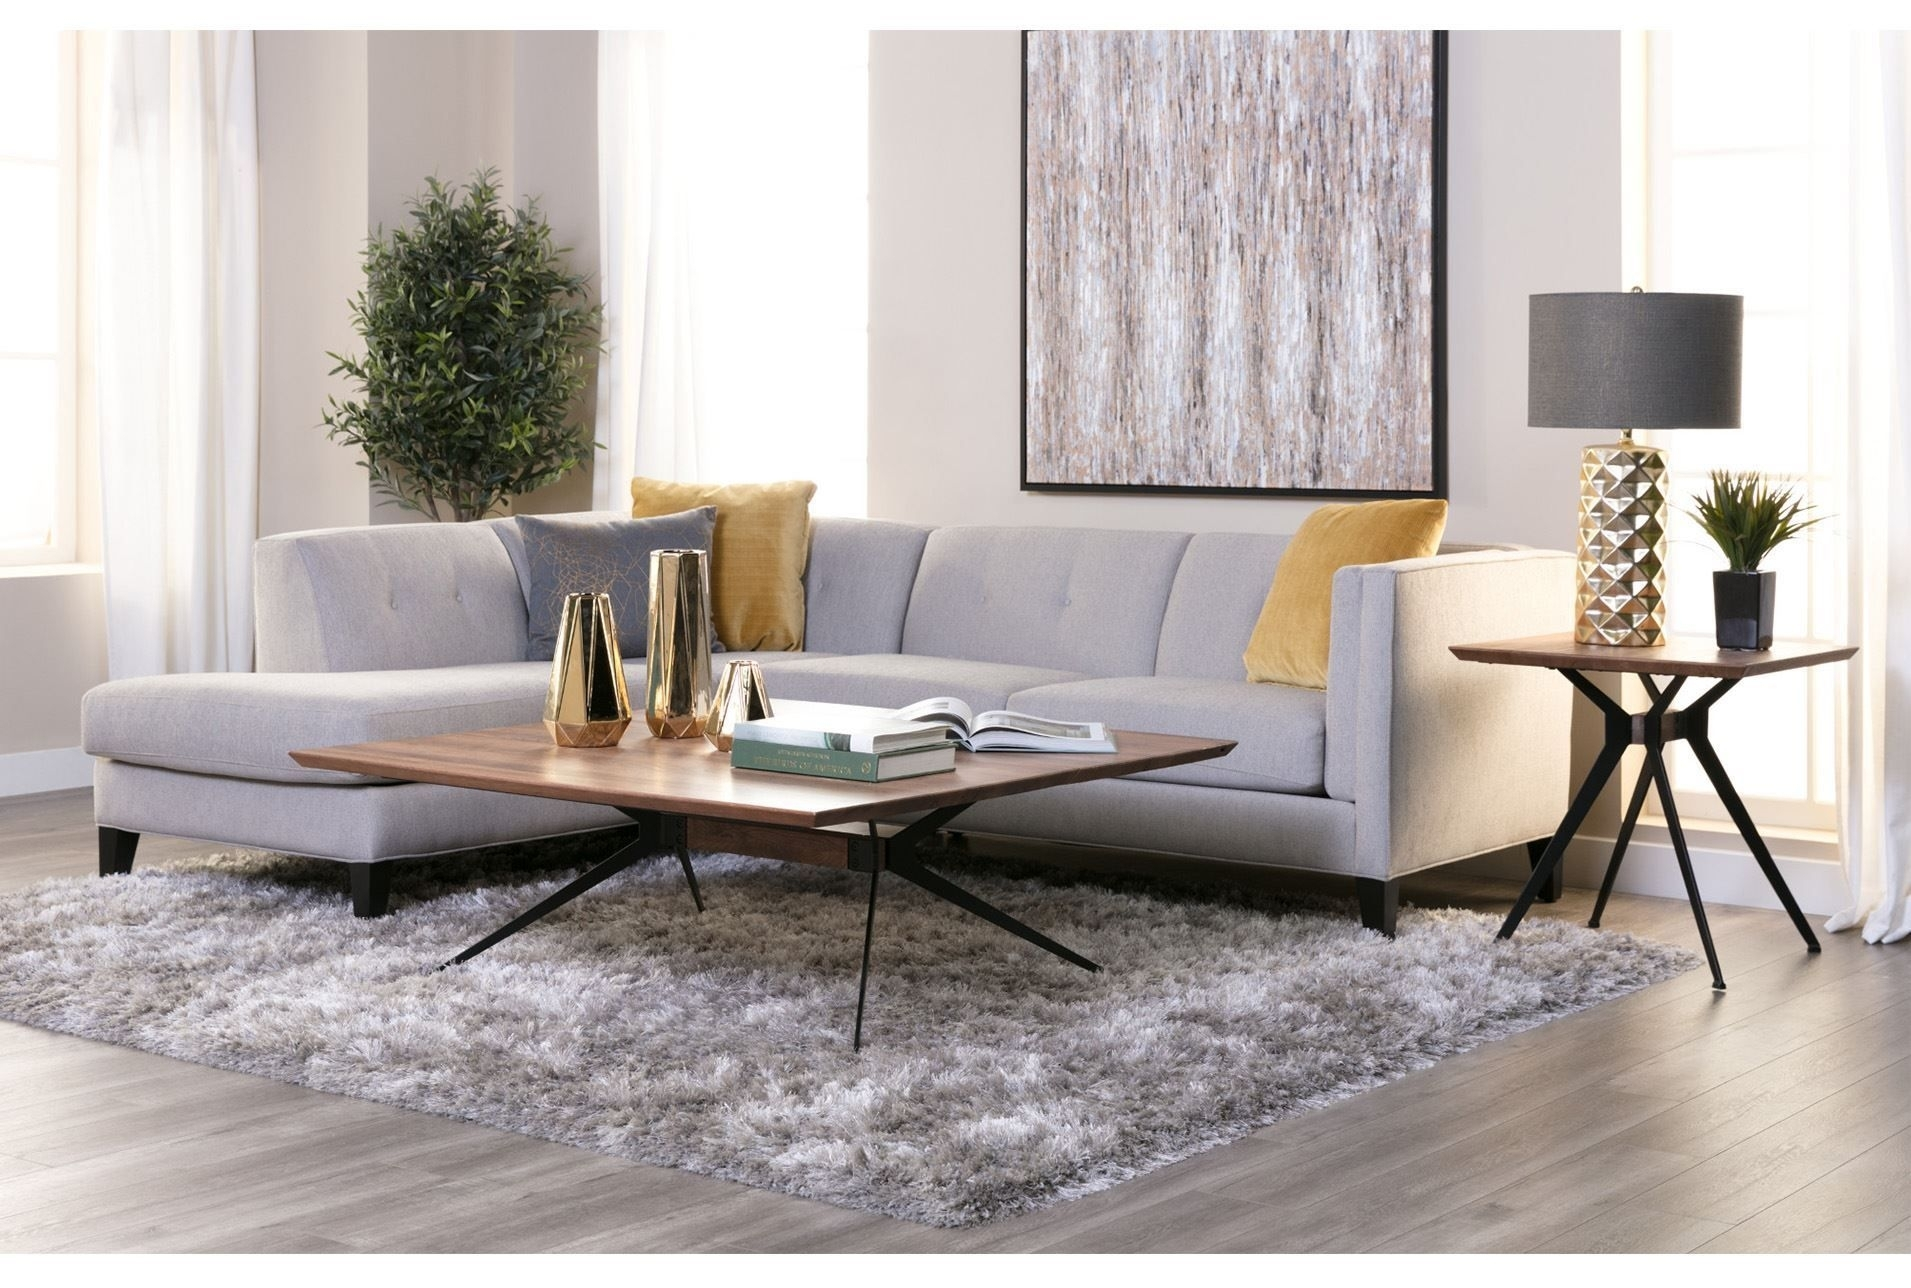 Avery 2 Piece Sectional W/laf Armless Chaise | Home Decor/interior For Avery 2 Piece Sectionals With Laf Armless Chaise (Image 6 of 25)